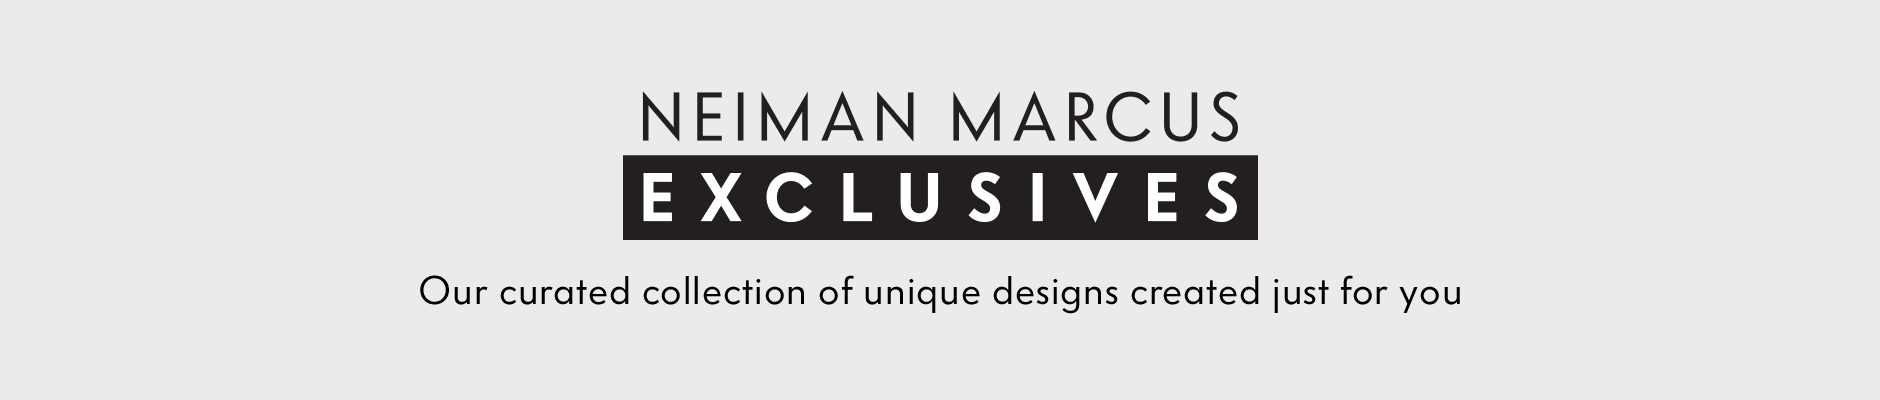 Neiman Marcus Exclusives - Our curated collection of unique designs created just for you